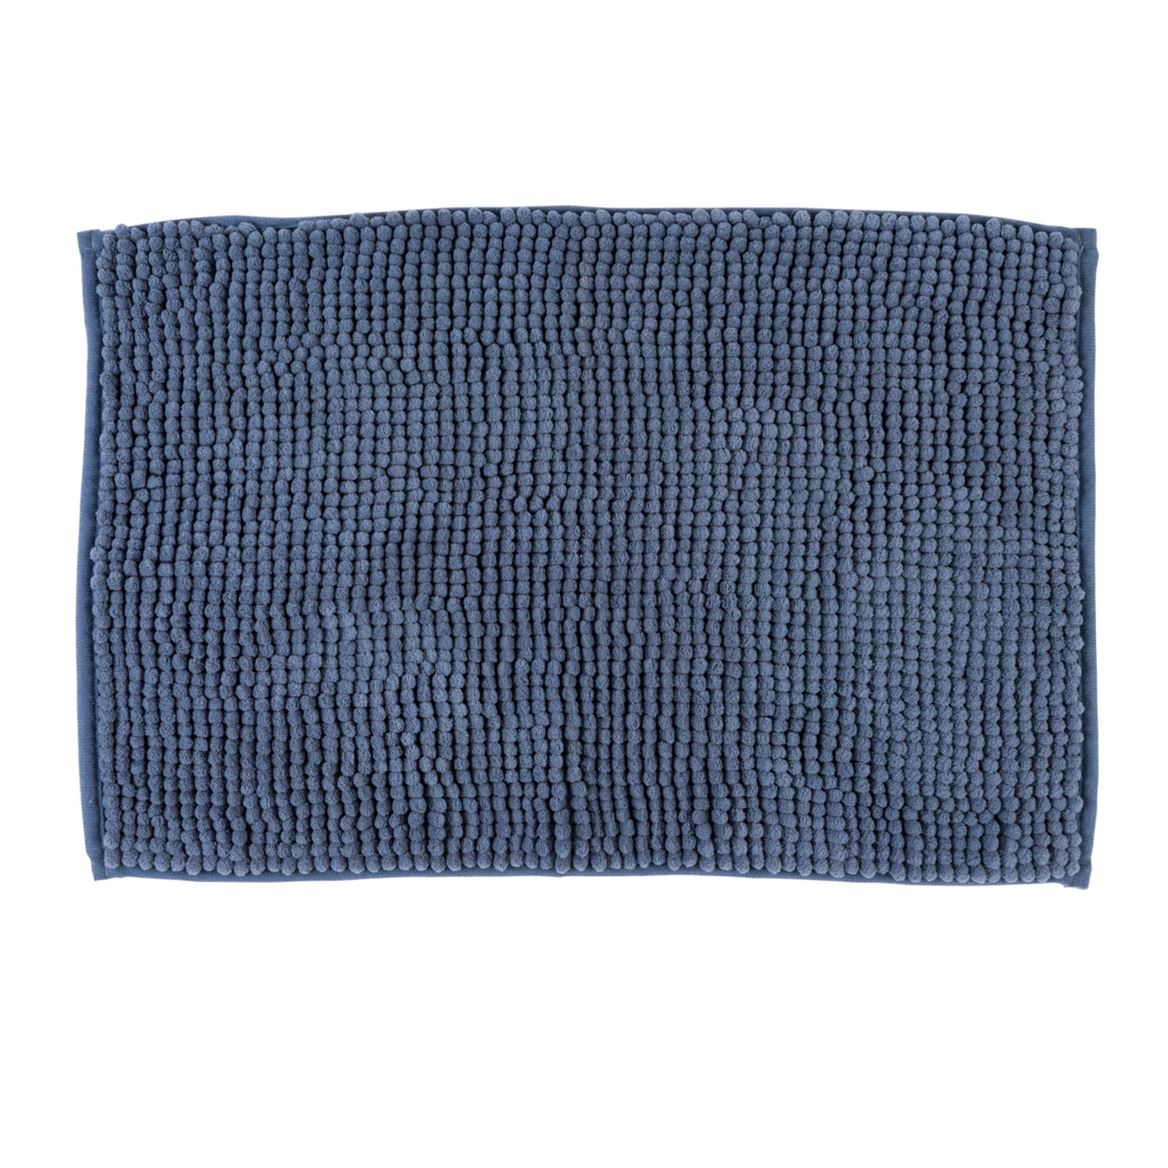 BREEZE Tapis de bain bleu Larg. 40 x Long. 60 cm_breeze-tapis-de-bain-bleu-larg--40-x-long--60-cm